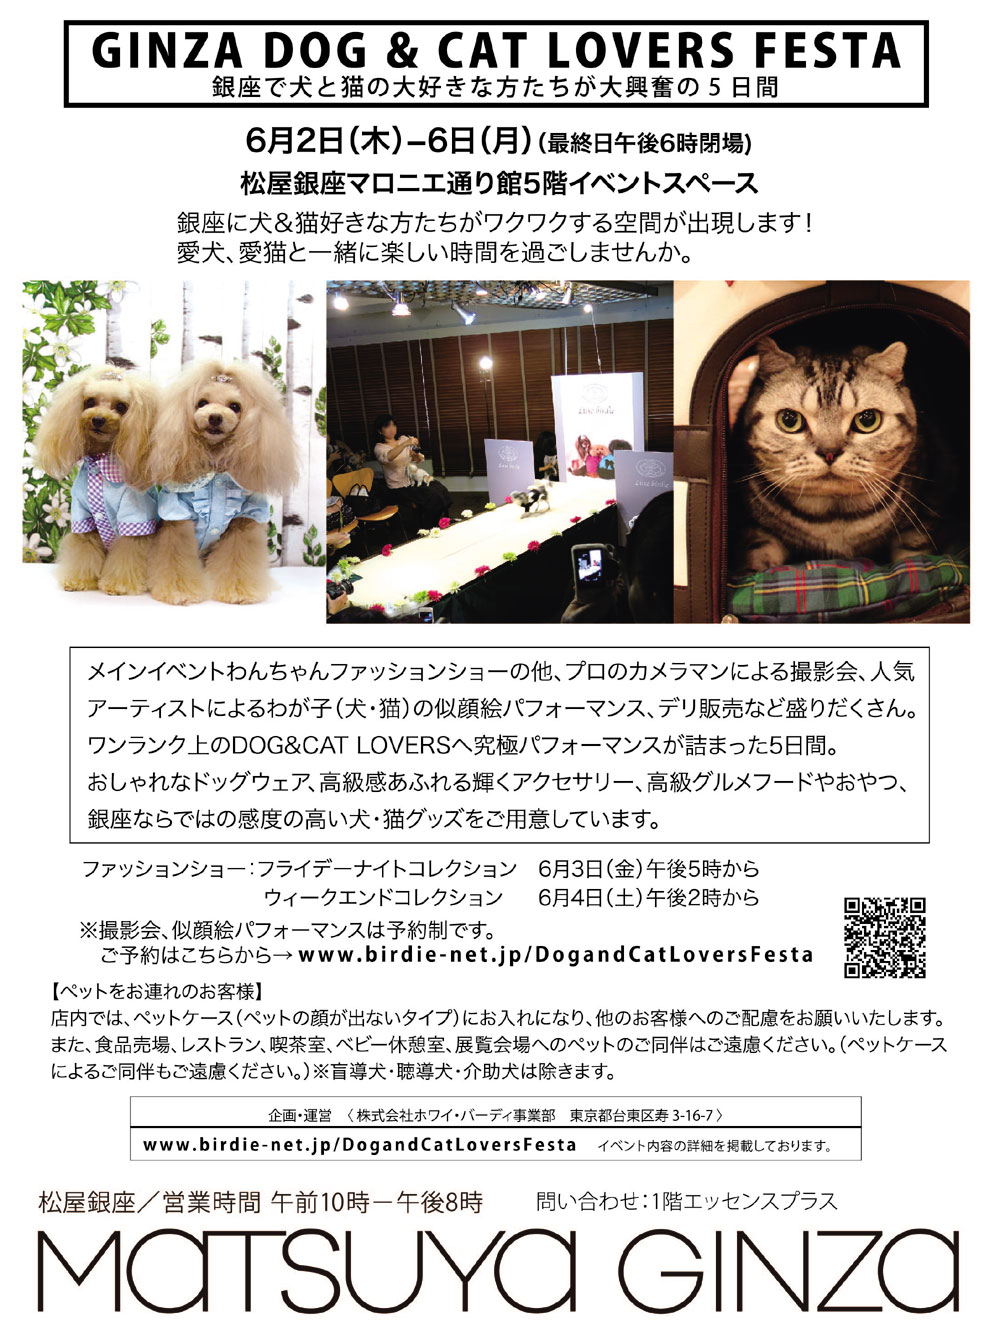 [GINZA DOG & CAT LOVERS FESTA 2016]